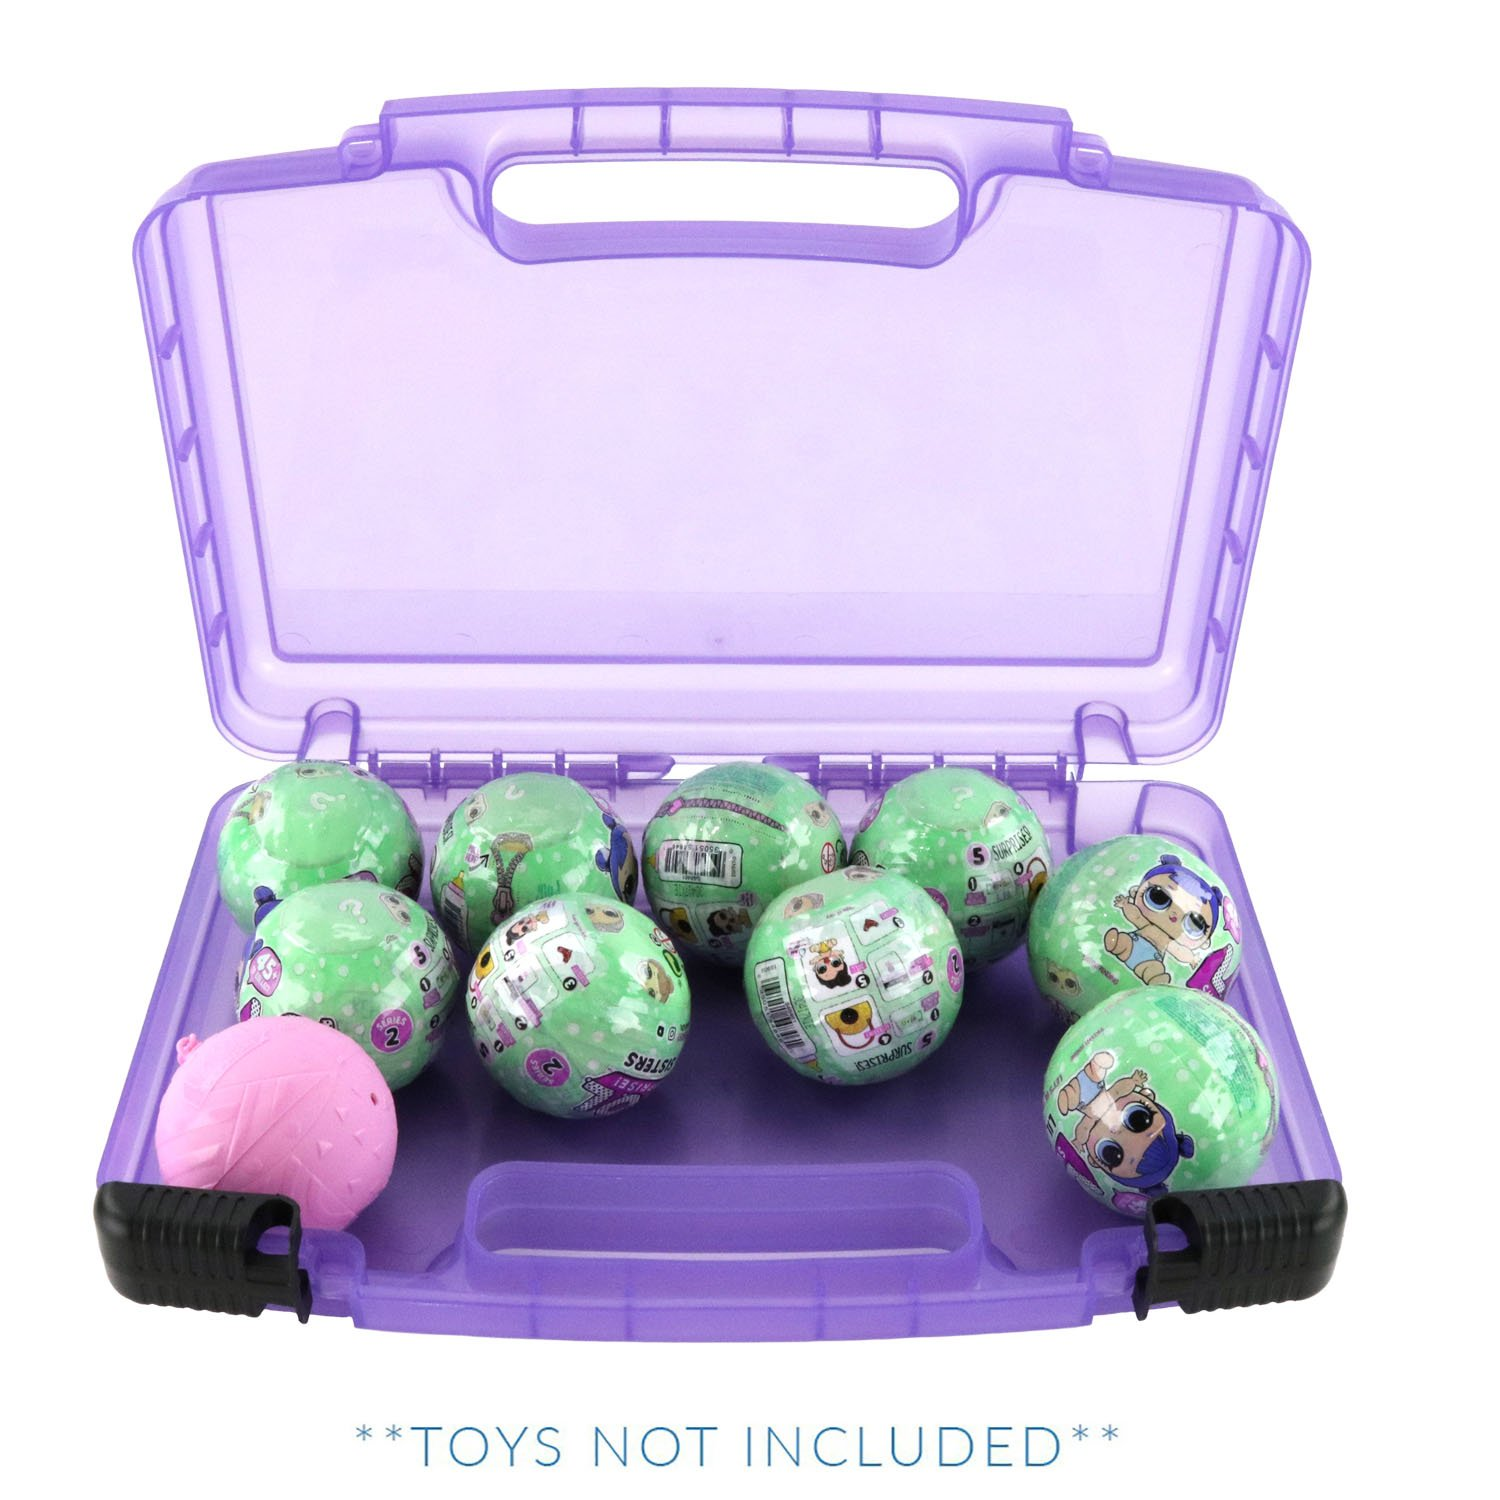 Life Made Better Toy Storage Carrying Case, Compatible With LOL Surprise Dolls. This Box Is Not Created By LOL Surprise!